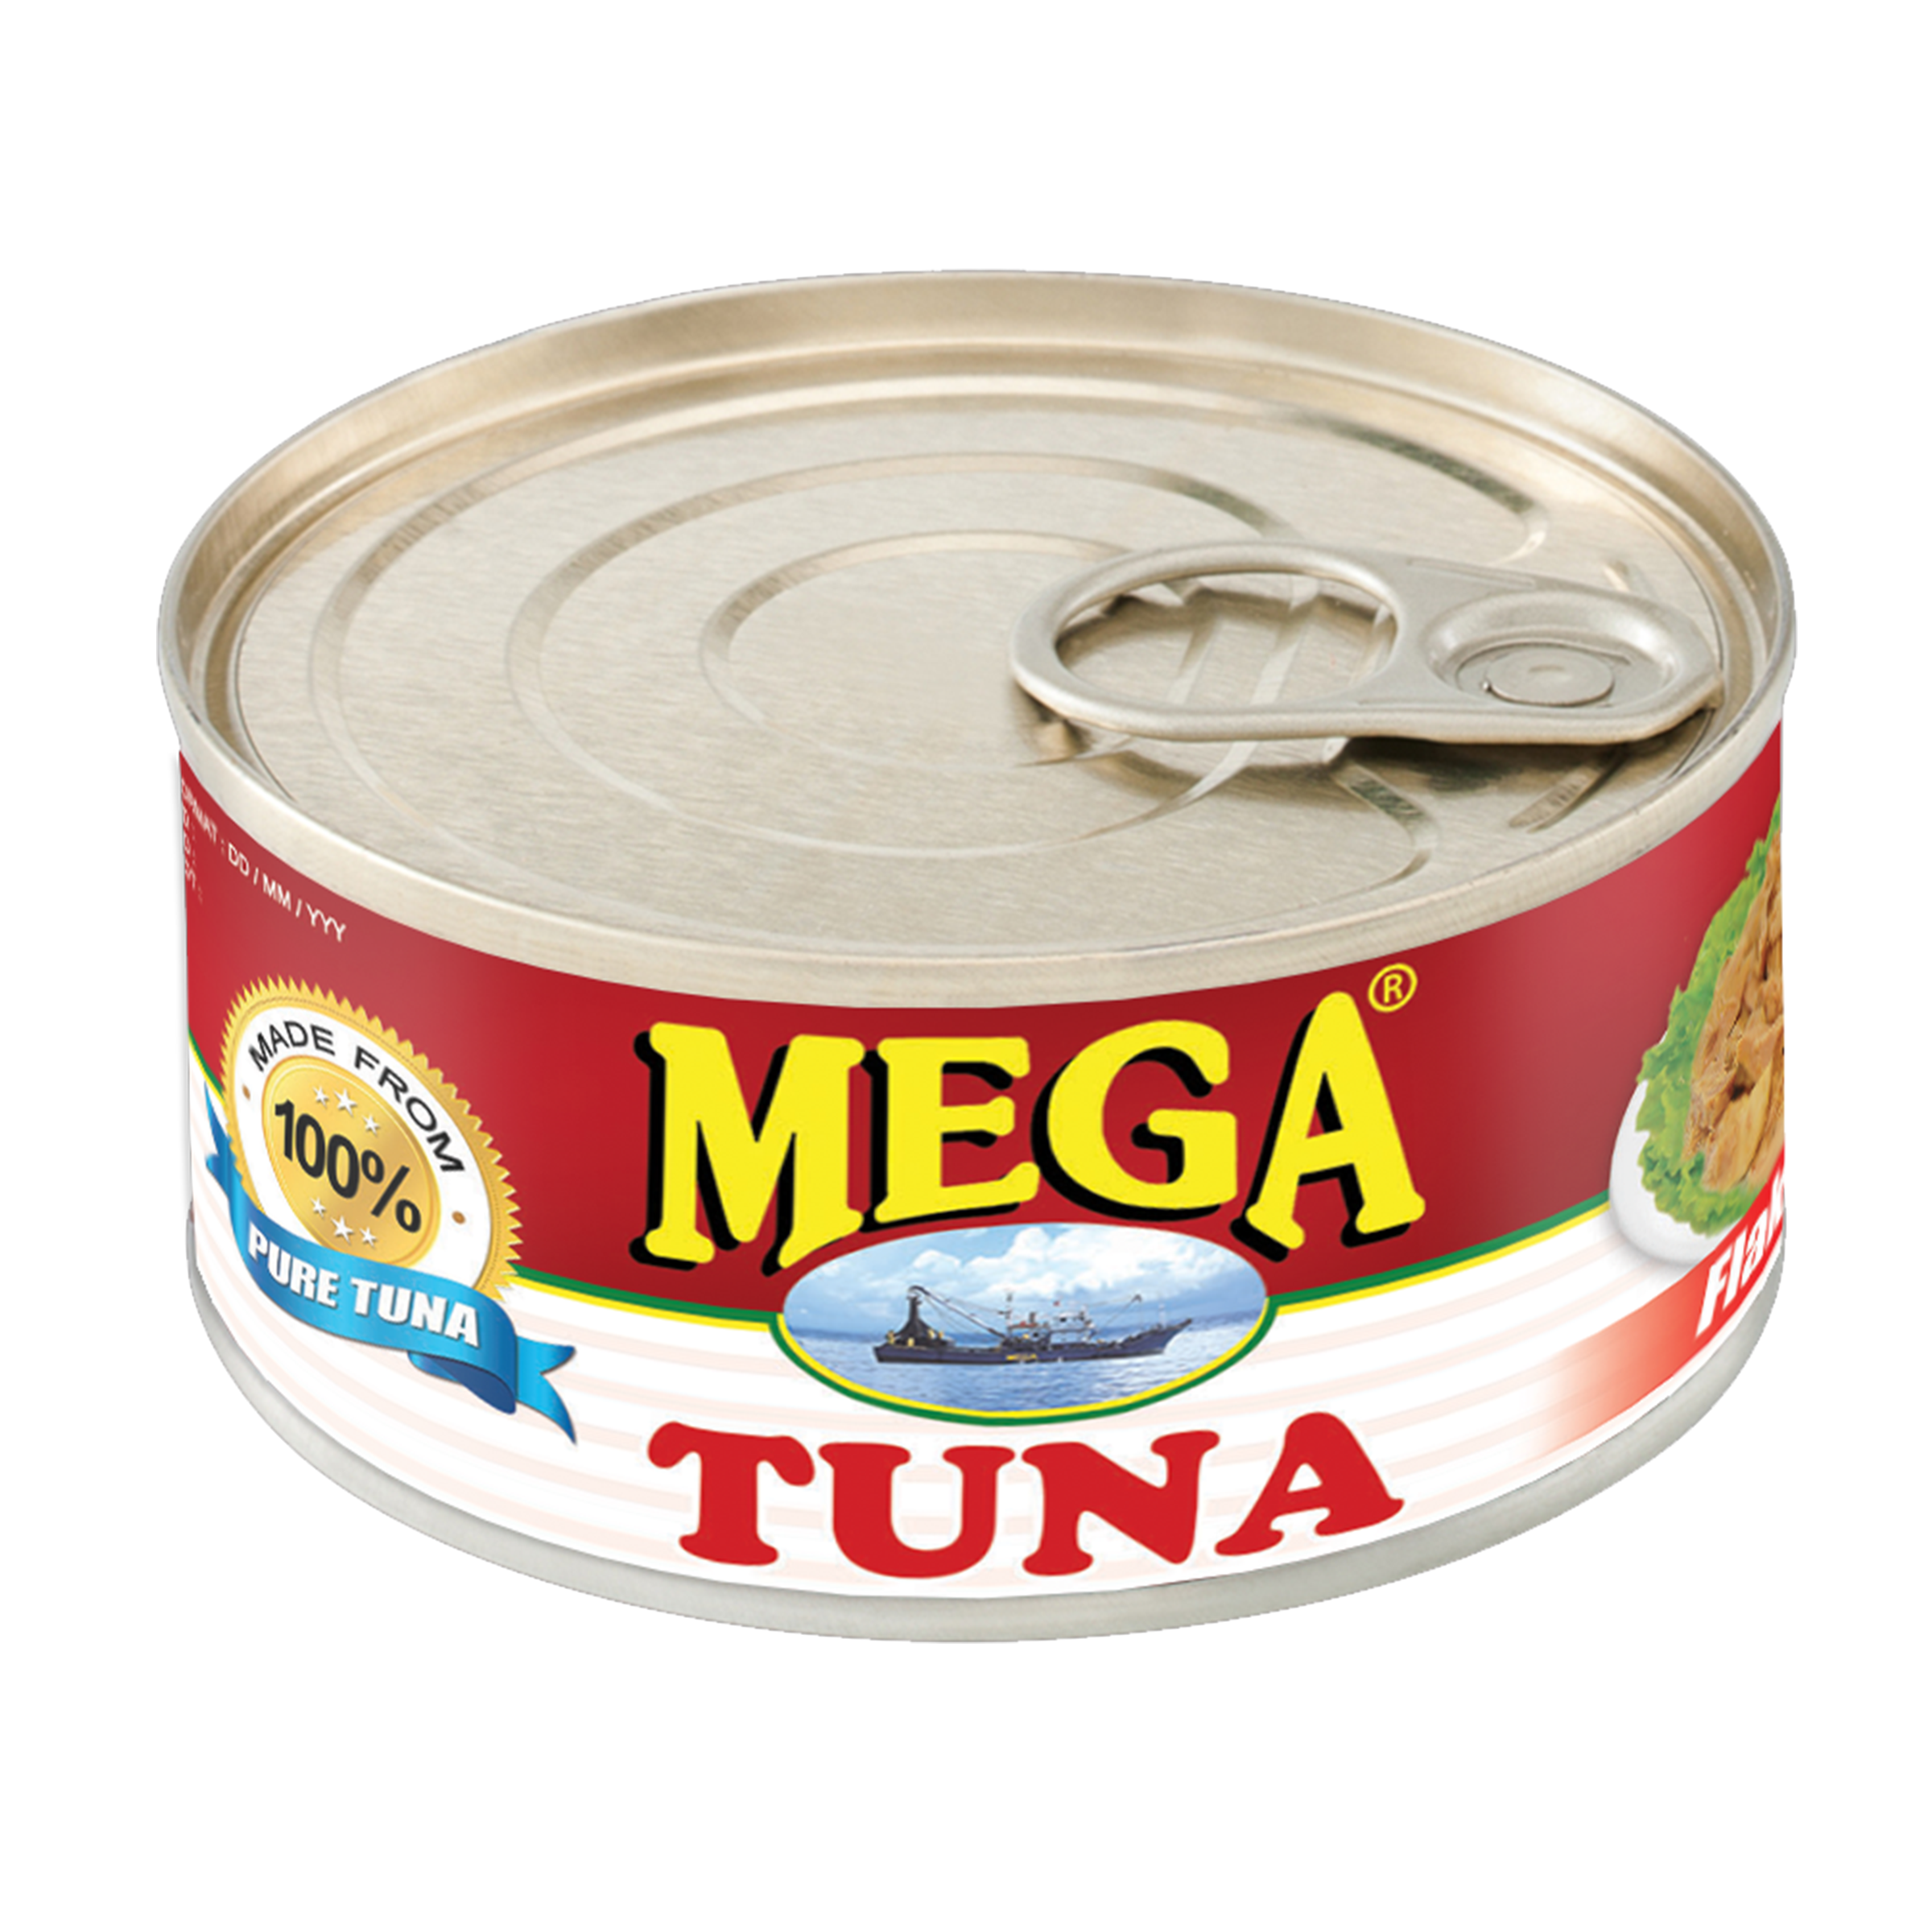 Mega Tuna Hot and Spicy 180g